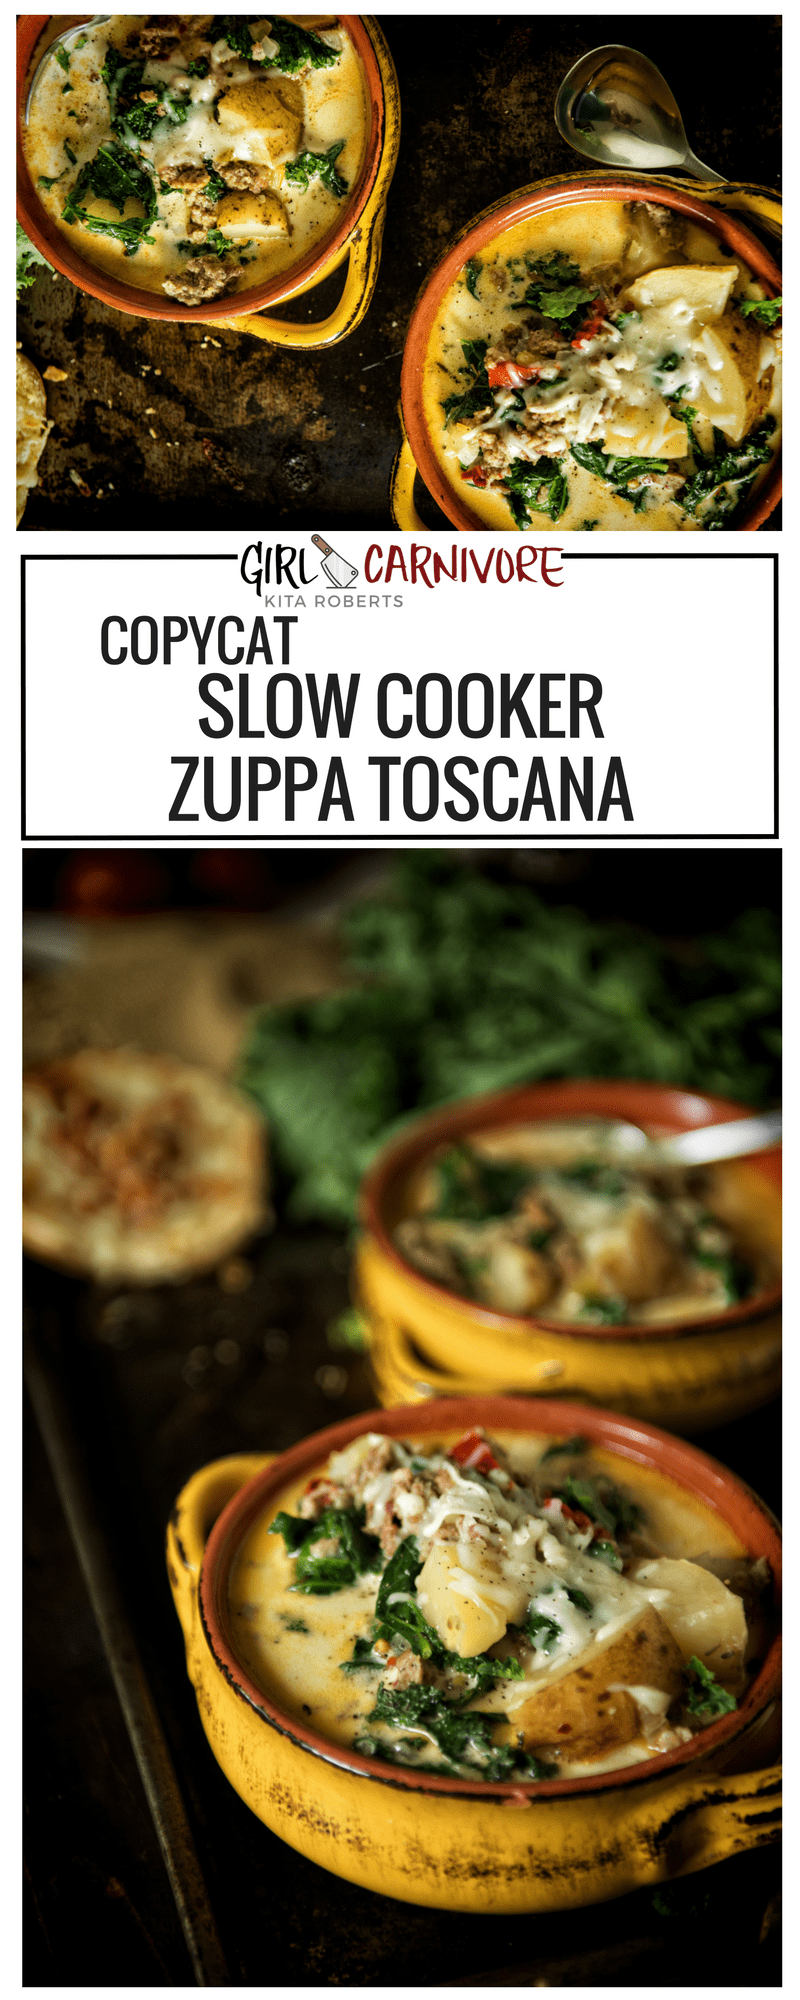 Copycat Slow Cooker Zuppa Toscana | Quick and easy family meal at GirlCarnivore.com